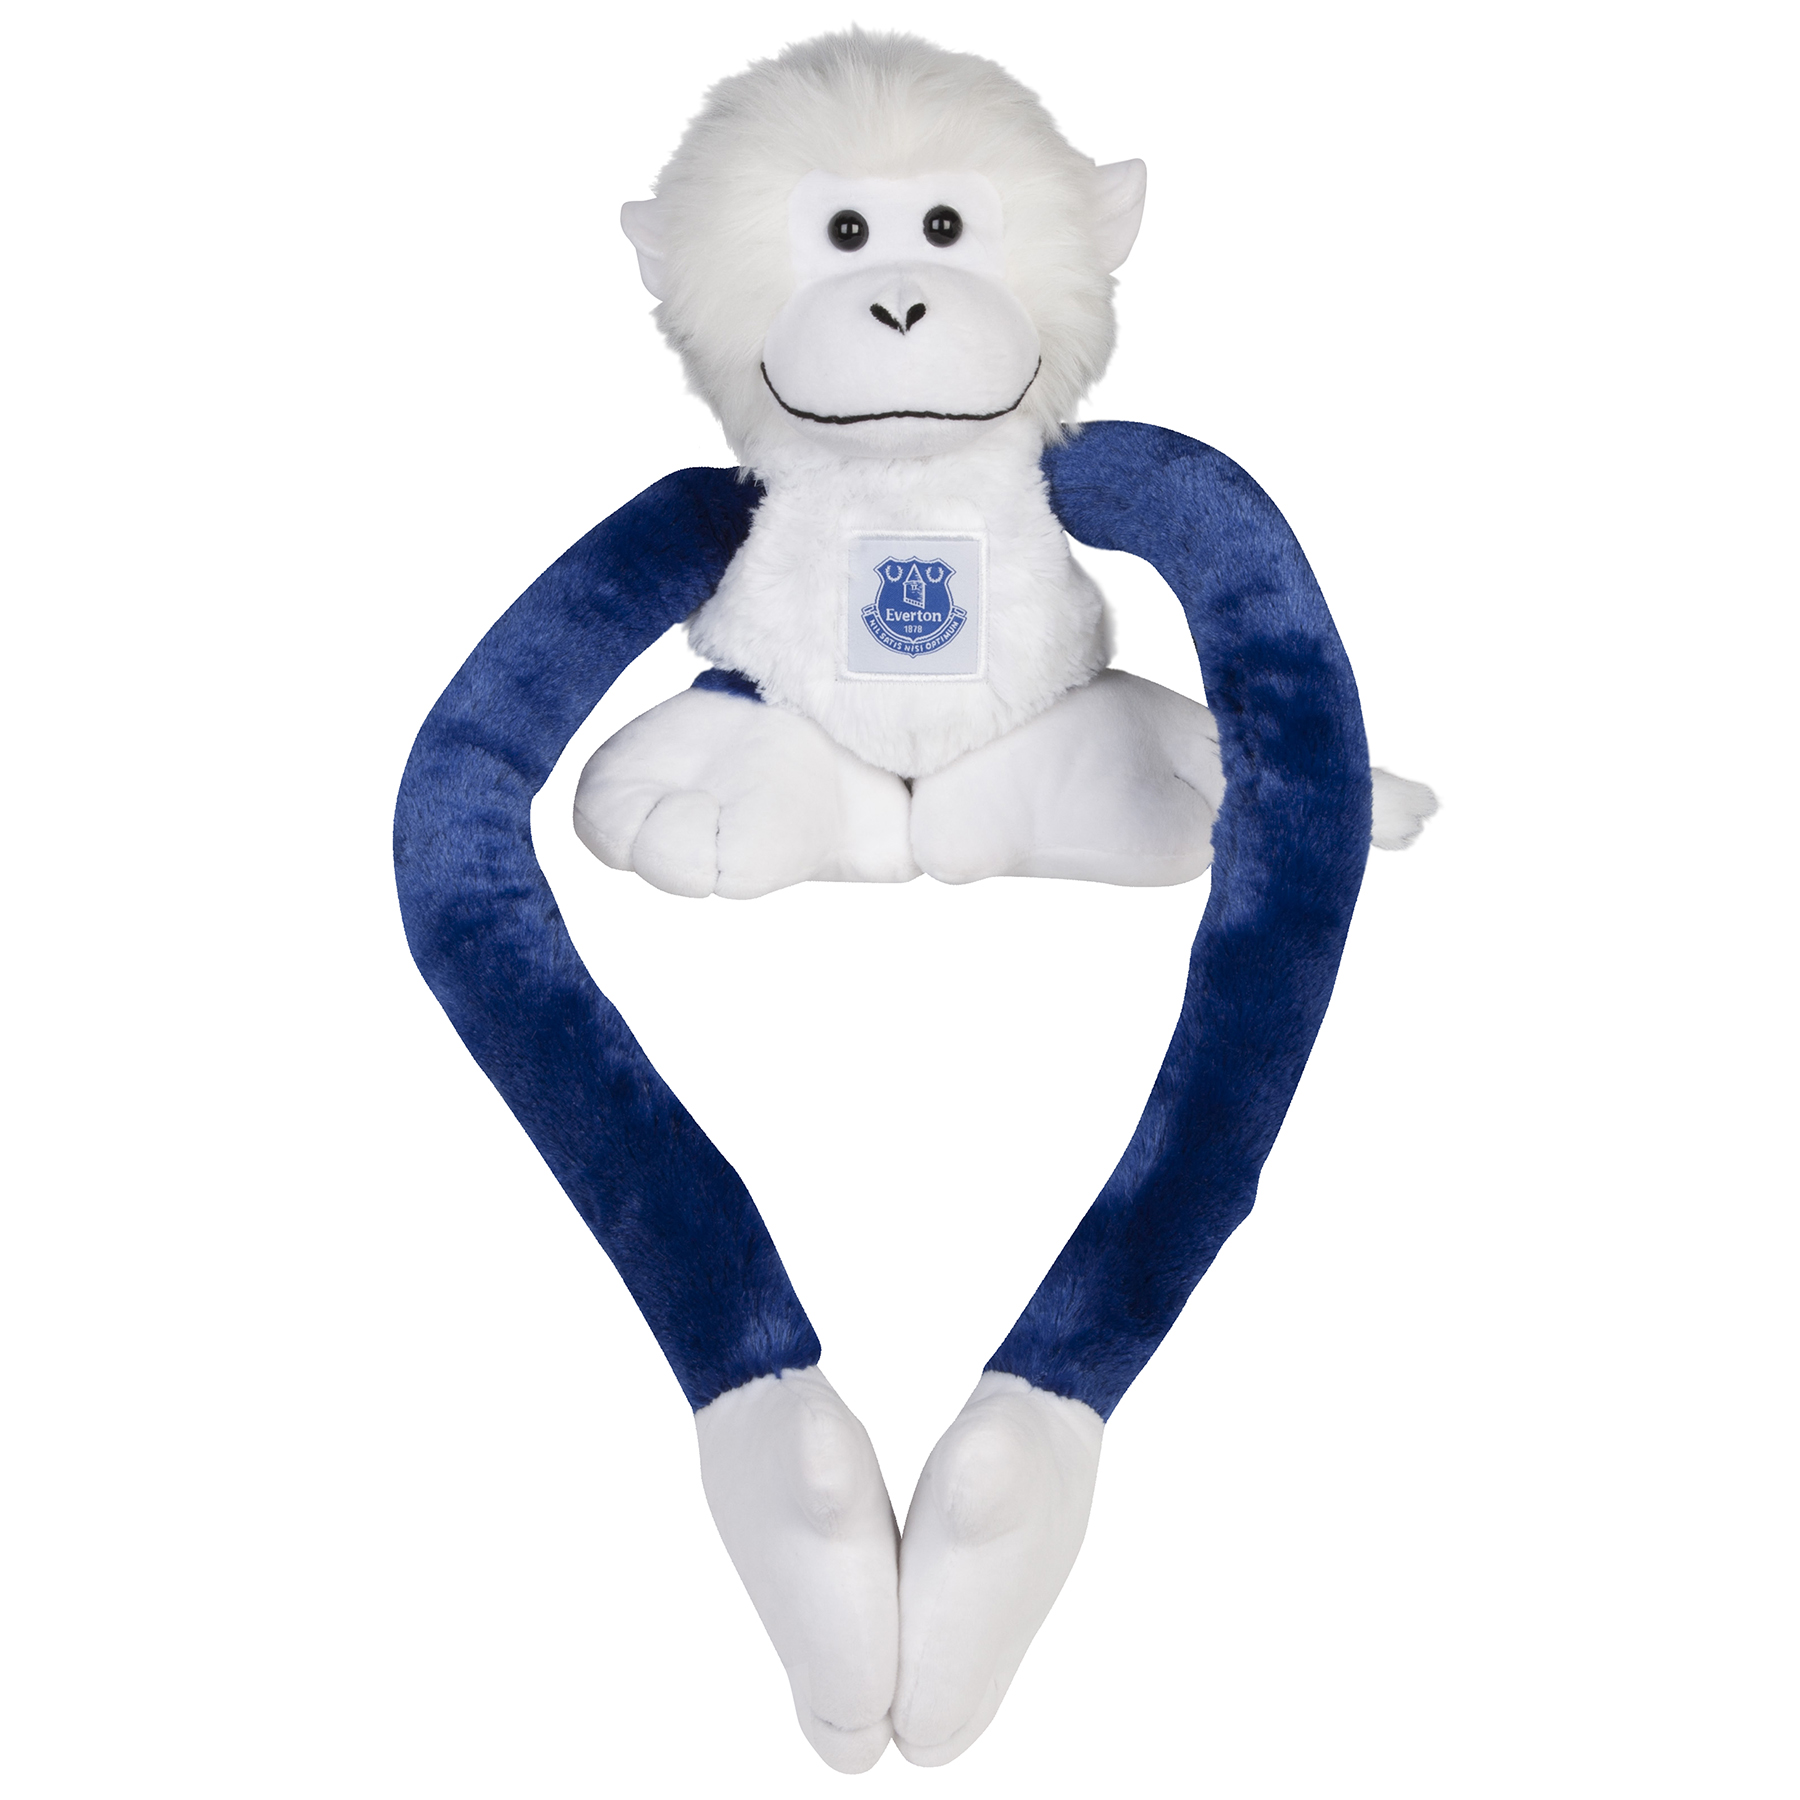 Everton Slider Monkey Soft Toy 22